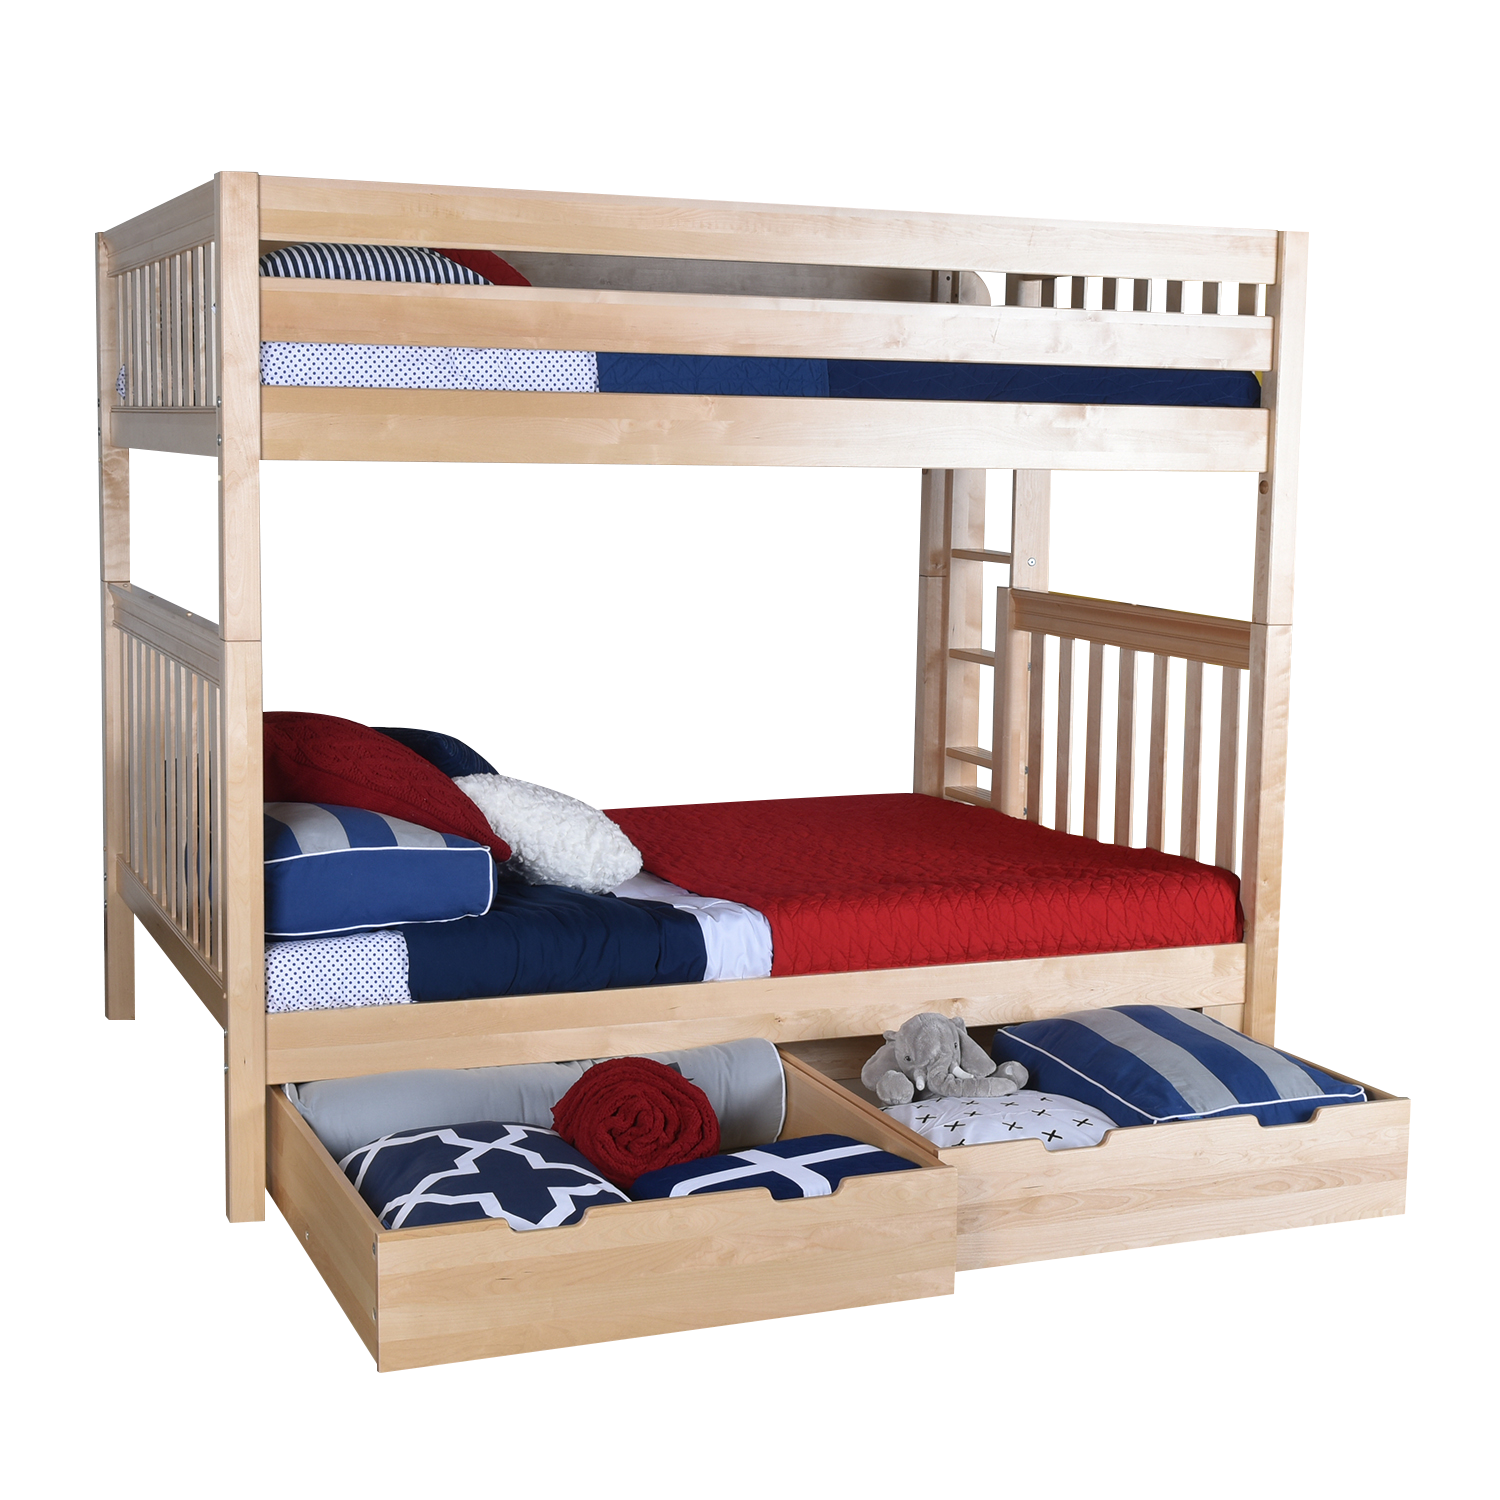 The Maxtrix Queen Over Queen Xl Bunk Bed Is The Ultimate In